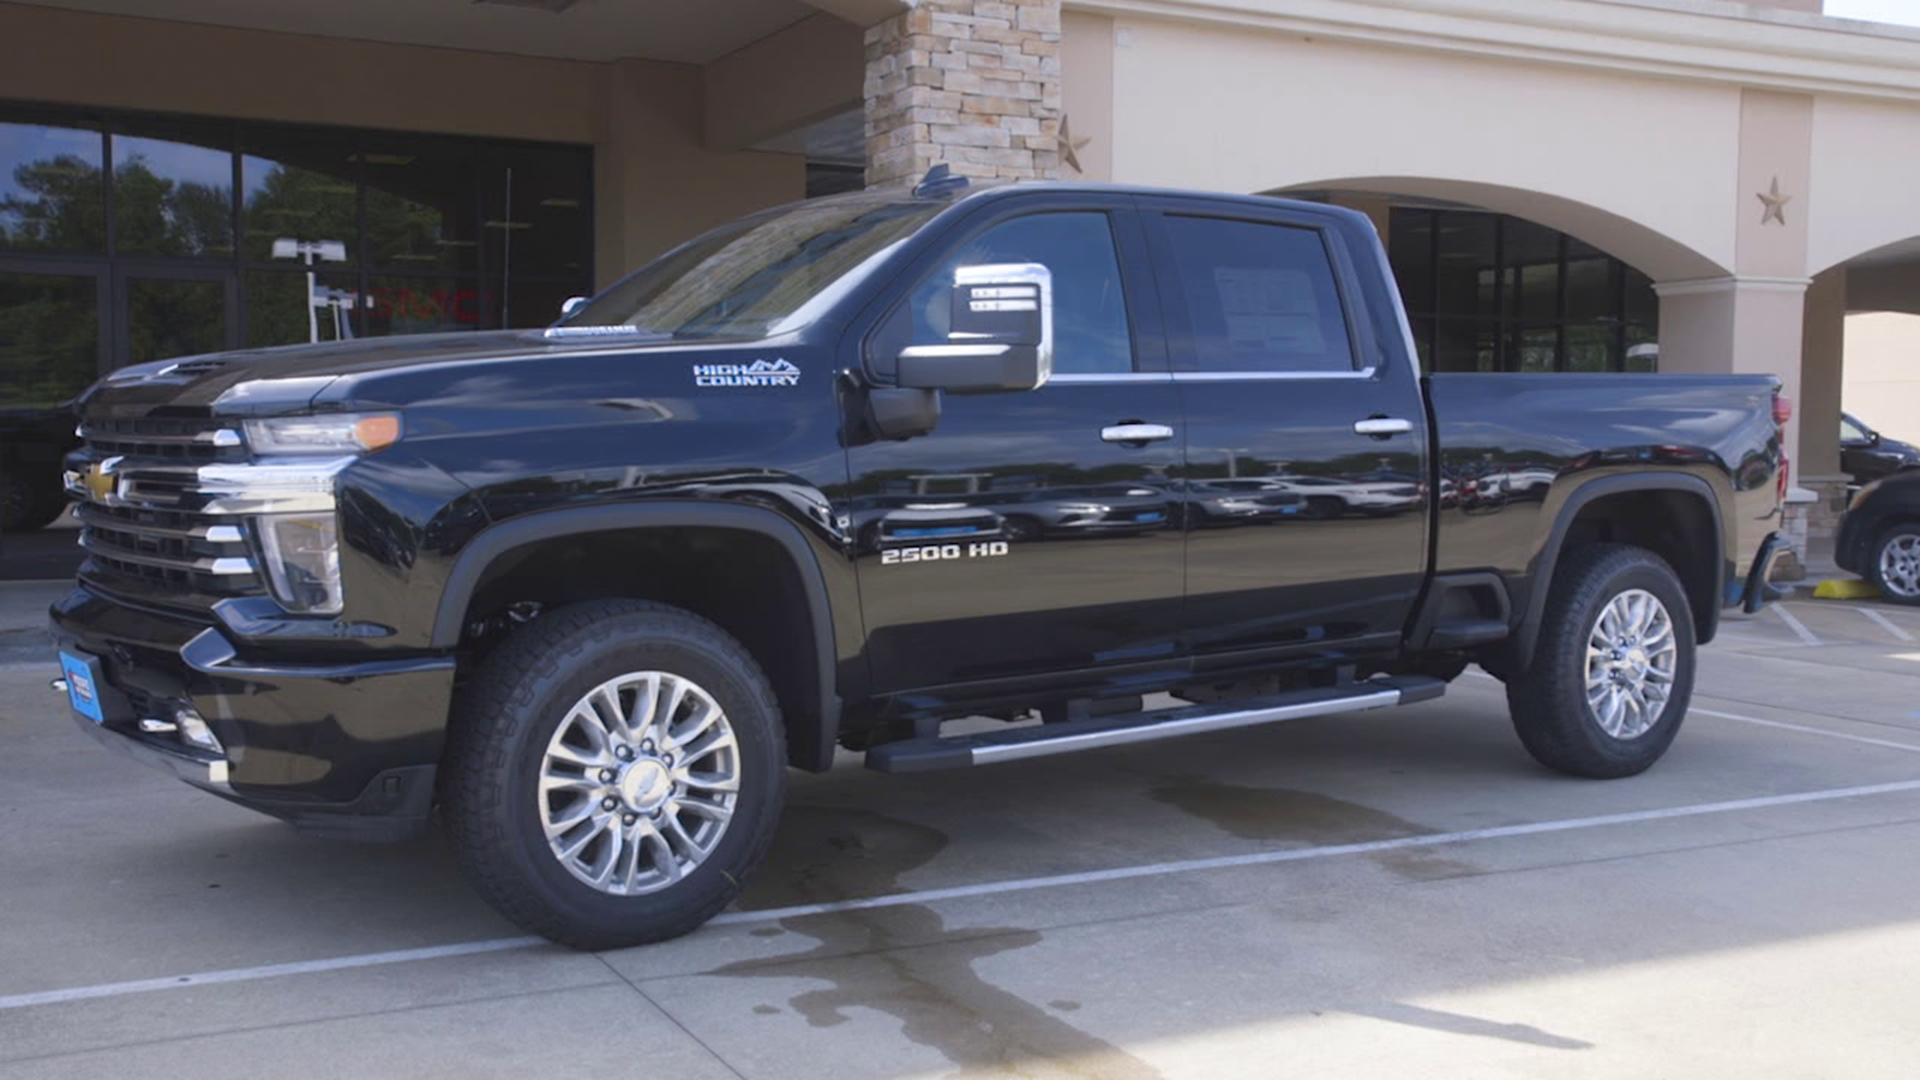 We Test Drove A 2020 Chevrolet Silverado 2500 High Country Duramax Diesel Pickup 12newsnow Com